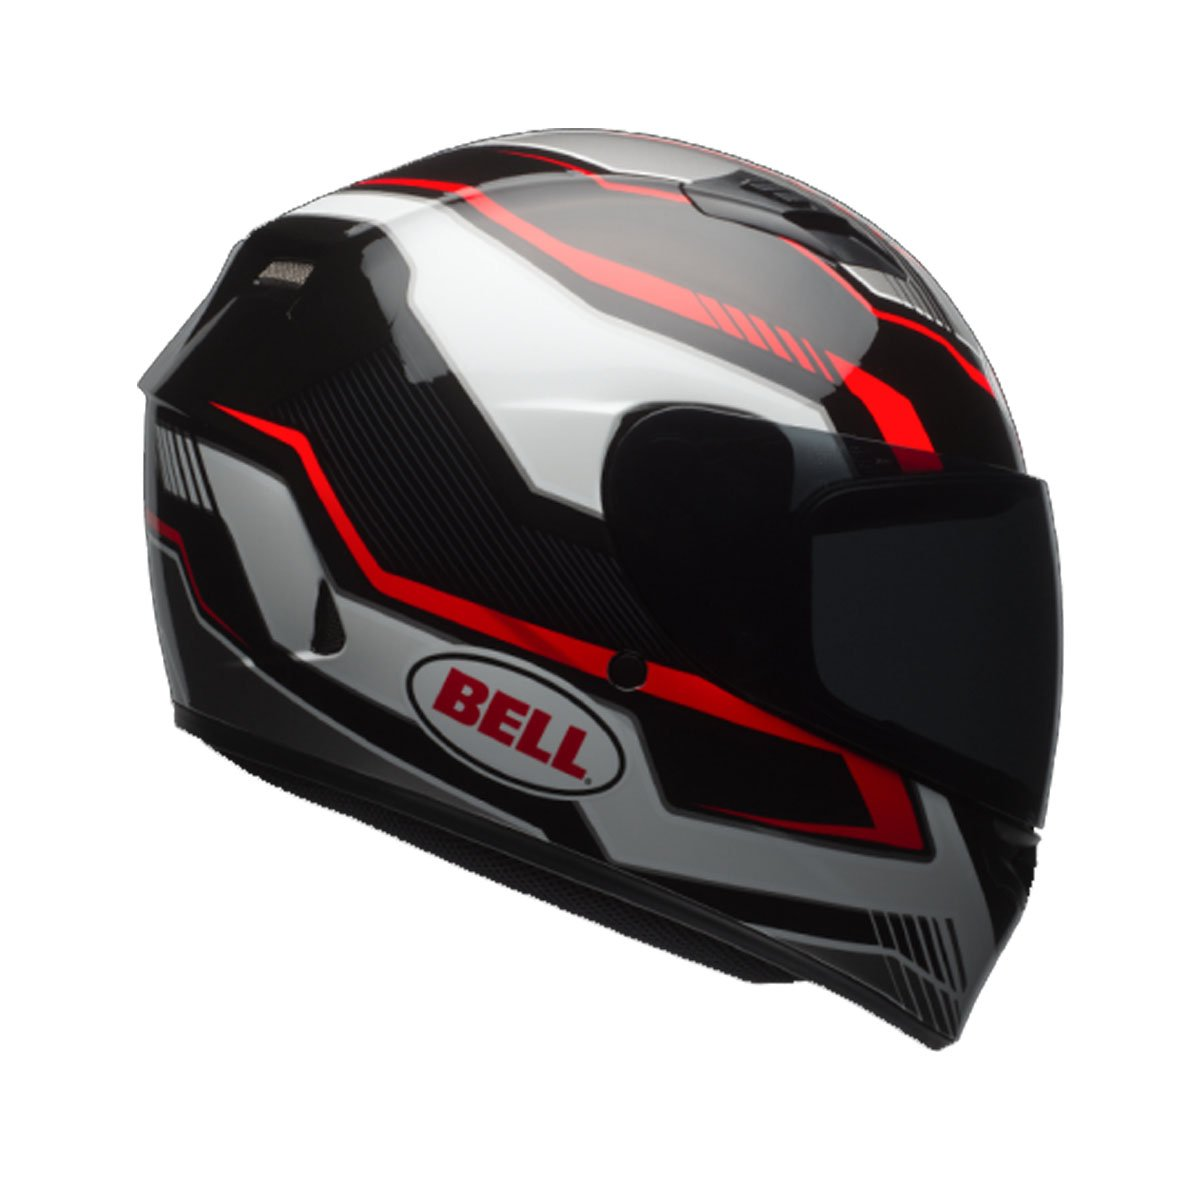 Bell Qualifier Torque Full-Face Motorcycle Helmet by Bell (Image #1)